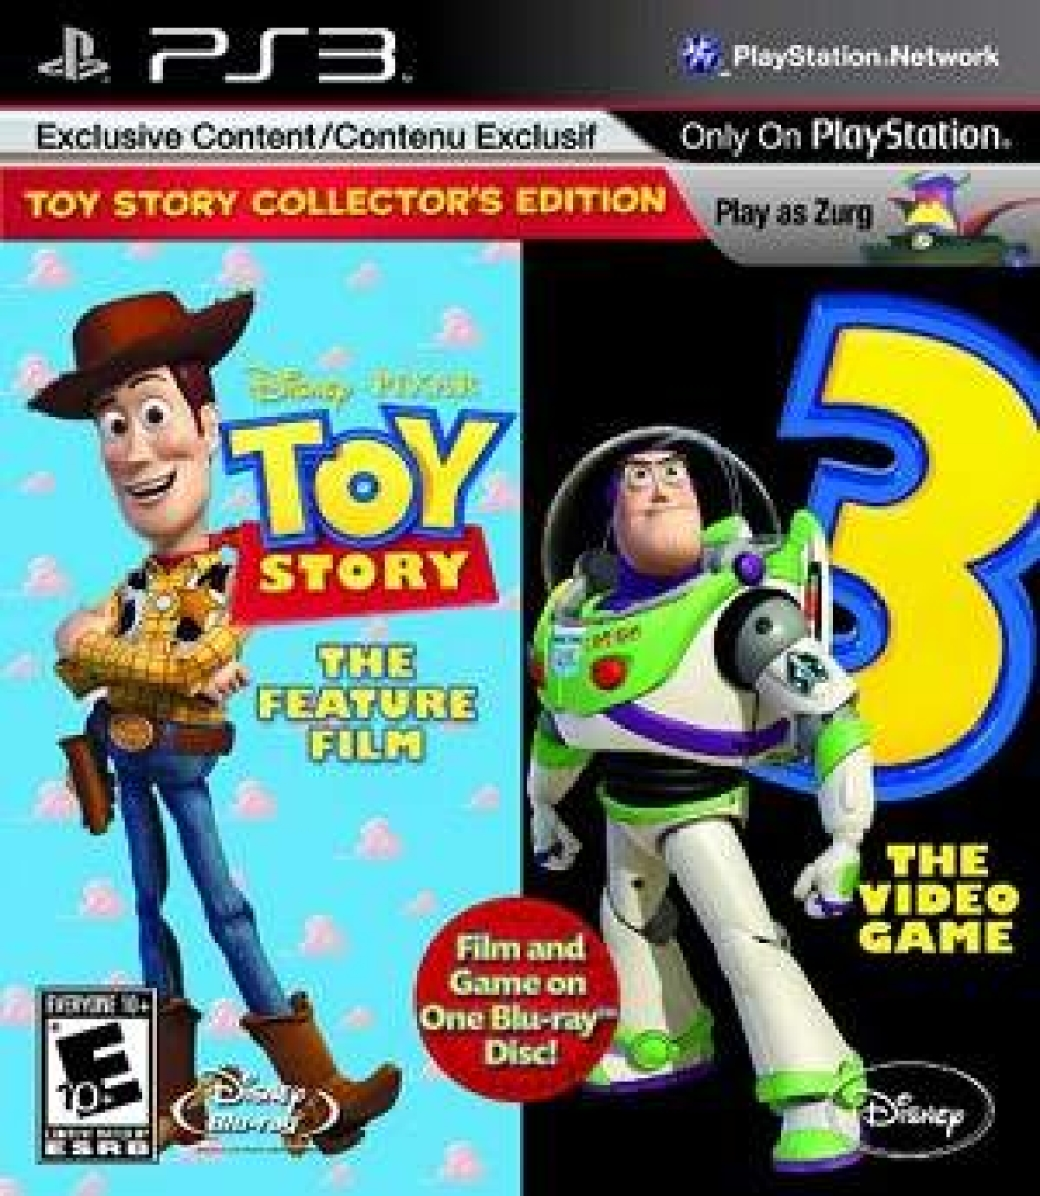 Case Of Toy Story Games : Disney puts out ps game and a blu ray movie on one disc